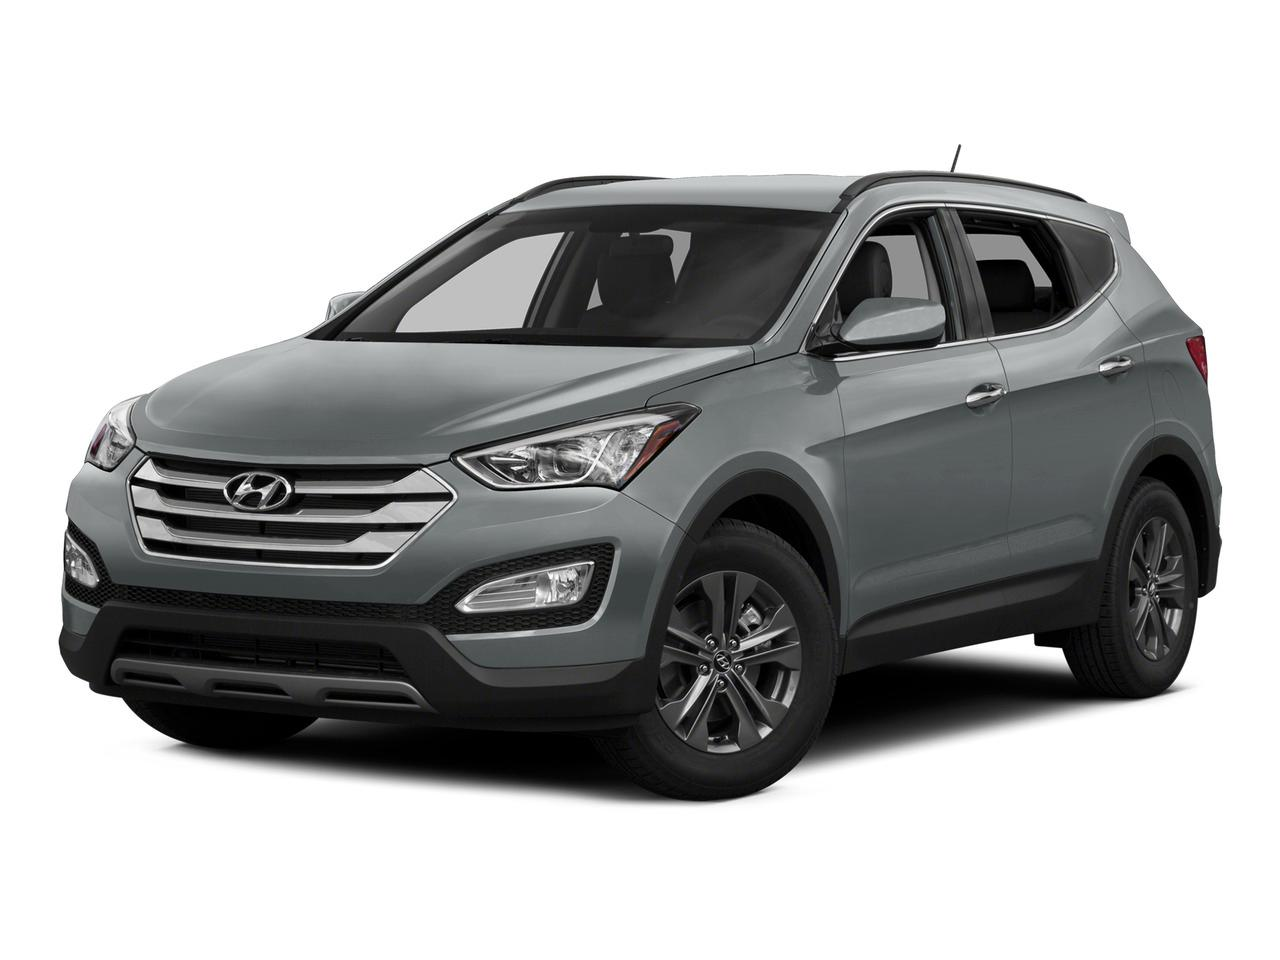 2015 Hyundai Santa Fe Sport Vehicle Photo in Manassas, VA 20109